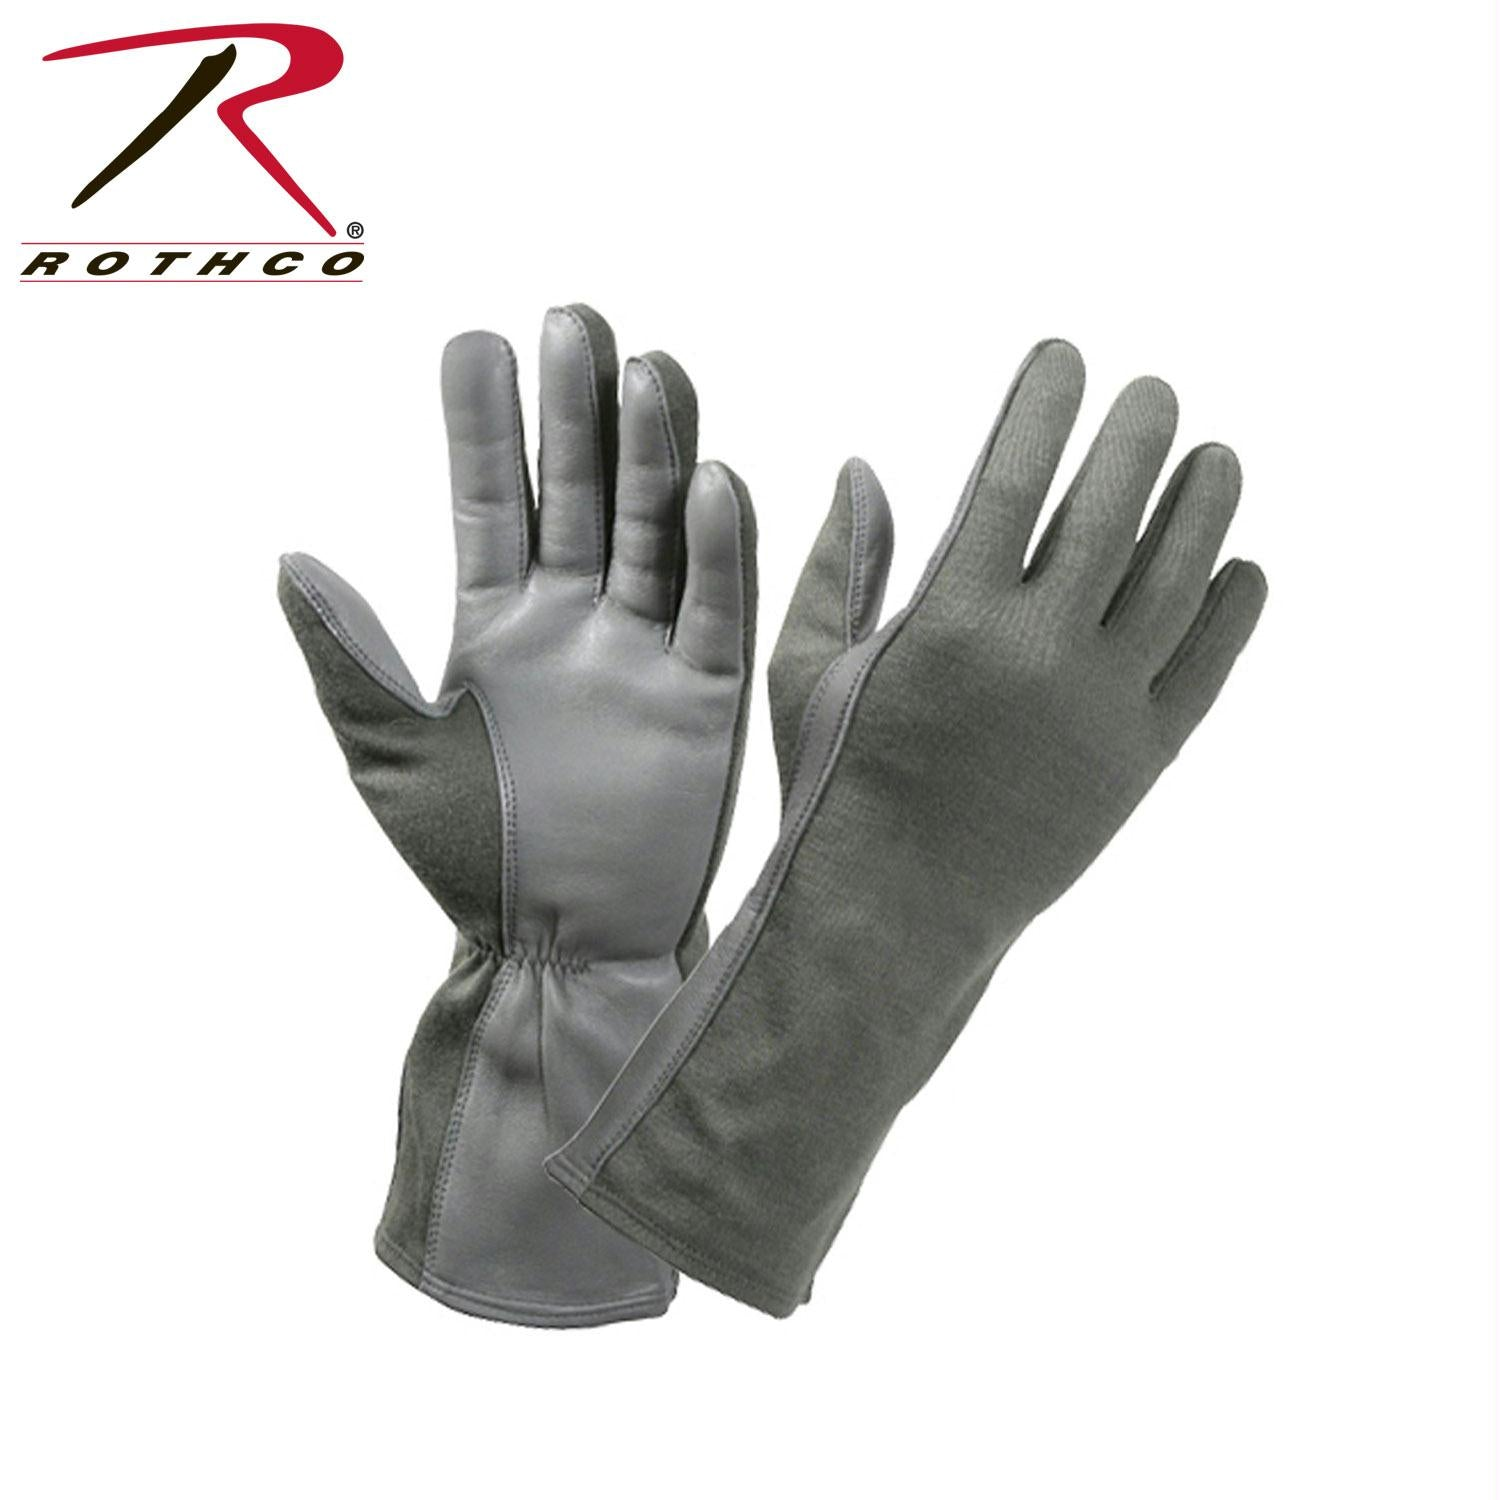 Rothco G.I. Type Flame & Heat Resistant Flight Gloves - Foliage Green / 10